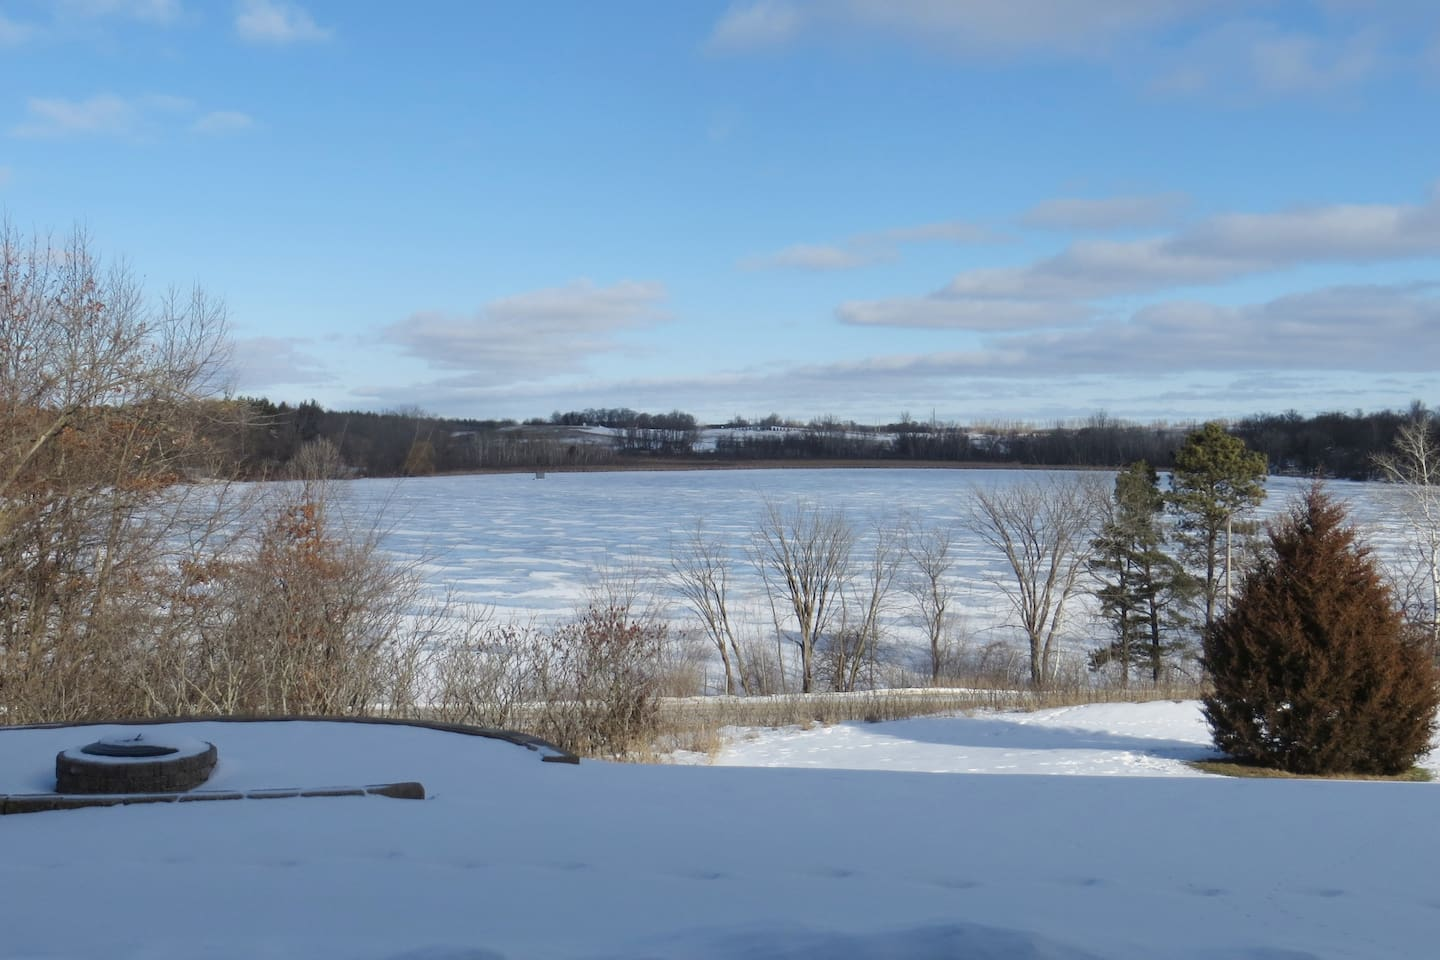 Winter view of the lake.